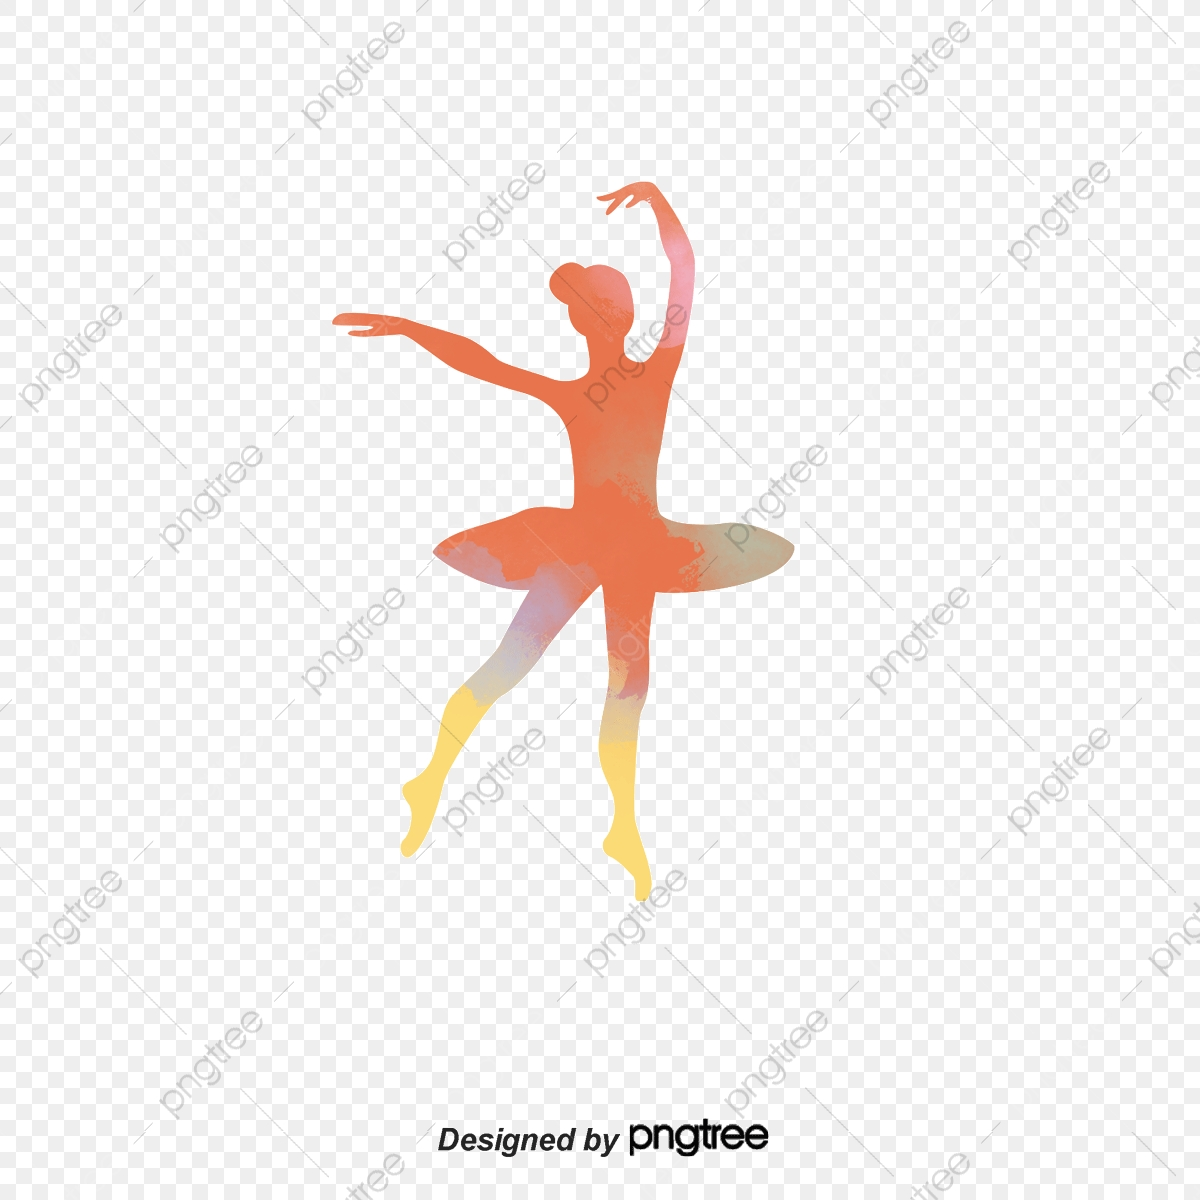 hight resolution of commercial use resource upgrade to premium plan and get license authorization upgradenow gouache ballet ballet clipart